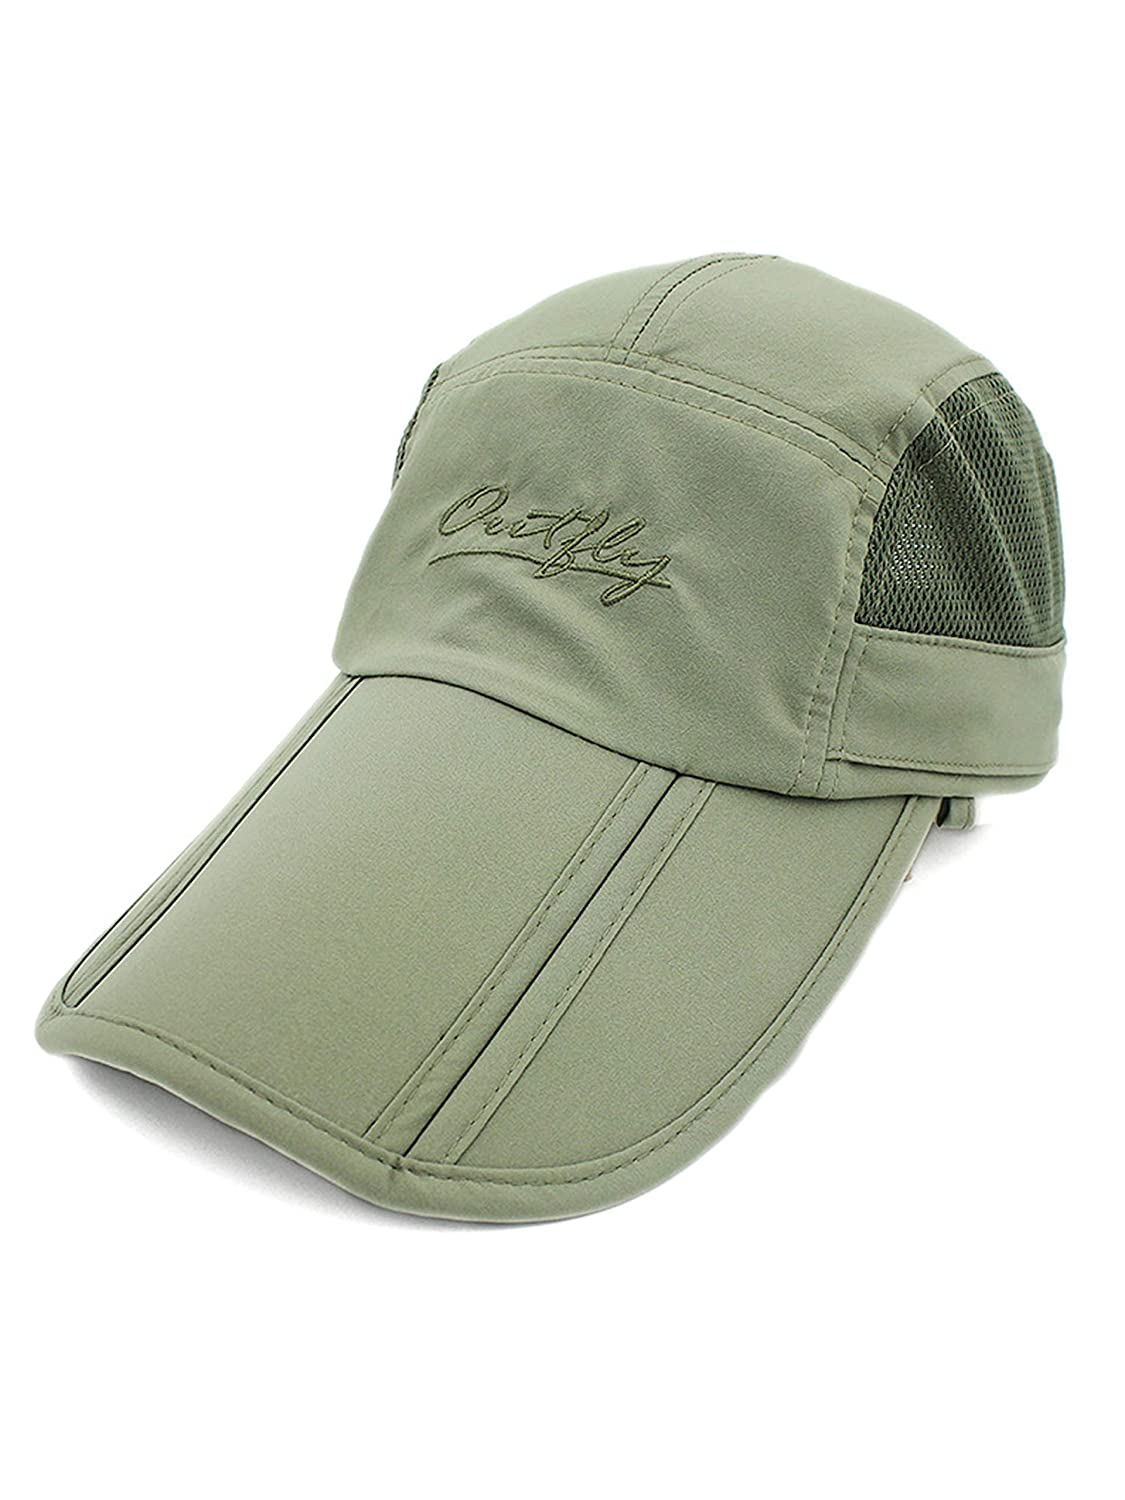 3e689460c8cd15 WANYING Unisex Safari Cap with Extra Long Neck Protection Anti UV Foldable Baseball  Cap for Camping Outdoor - Army Green: Amazon.co.uk: Clothing